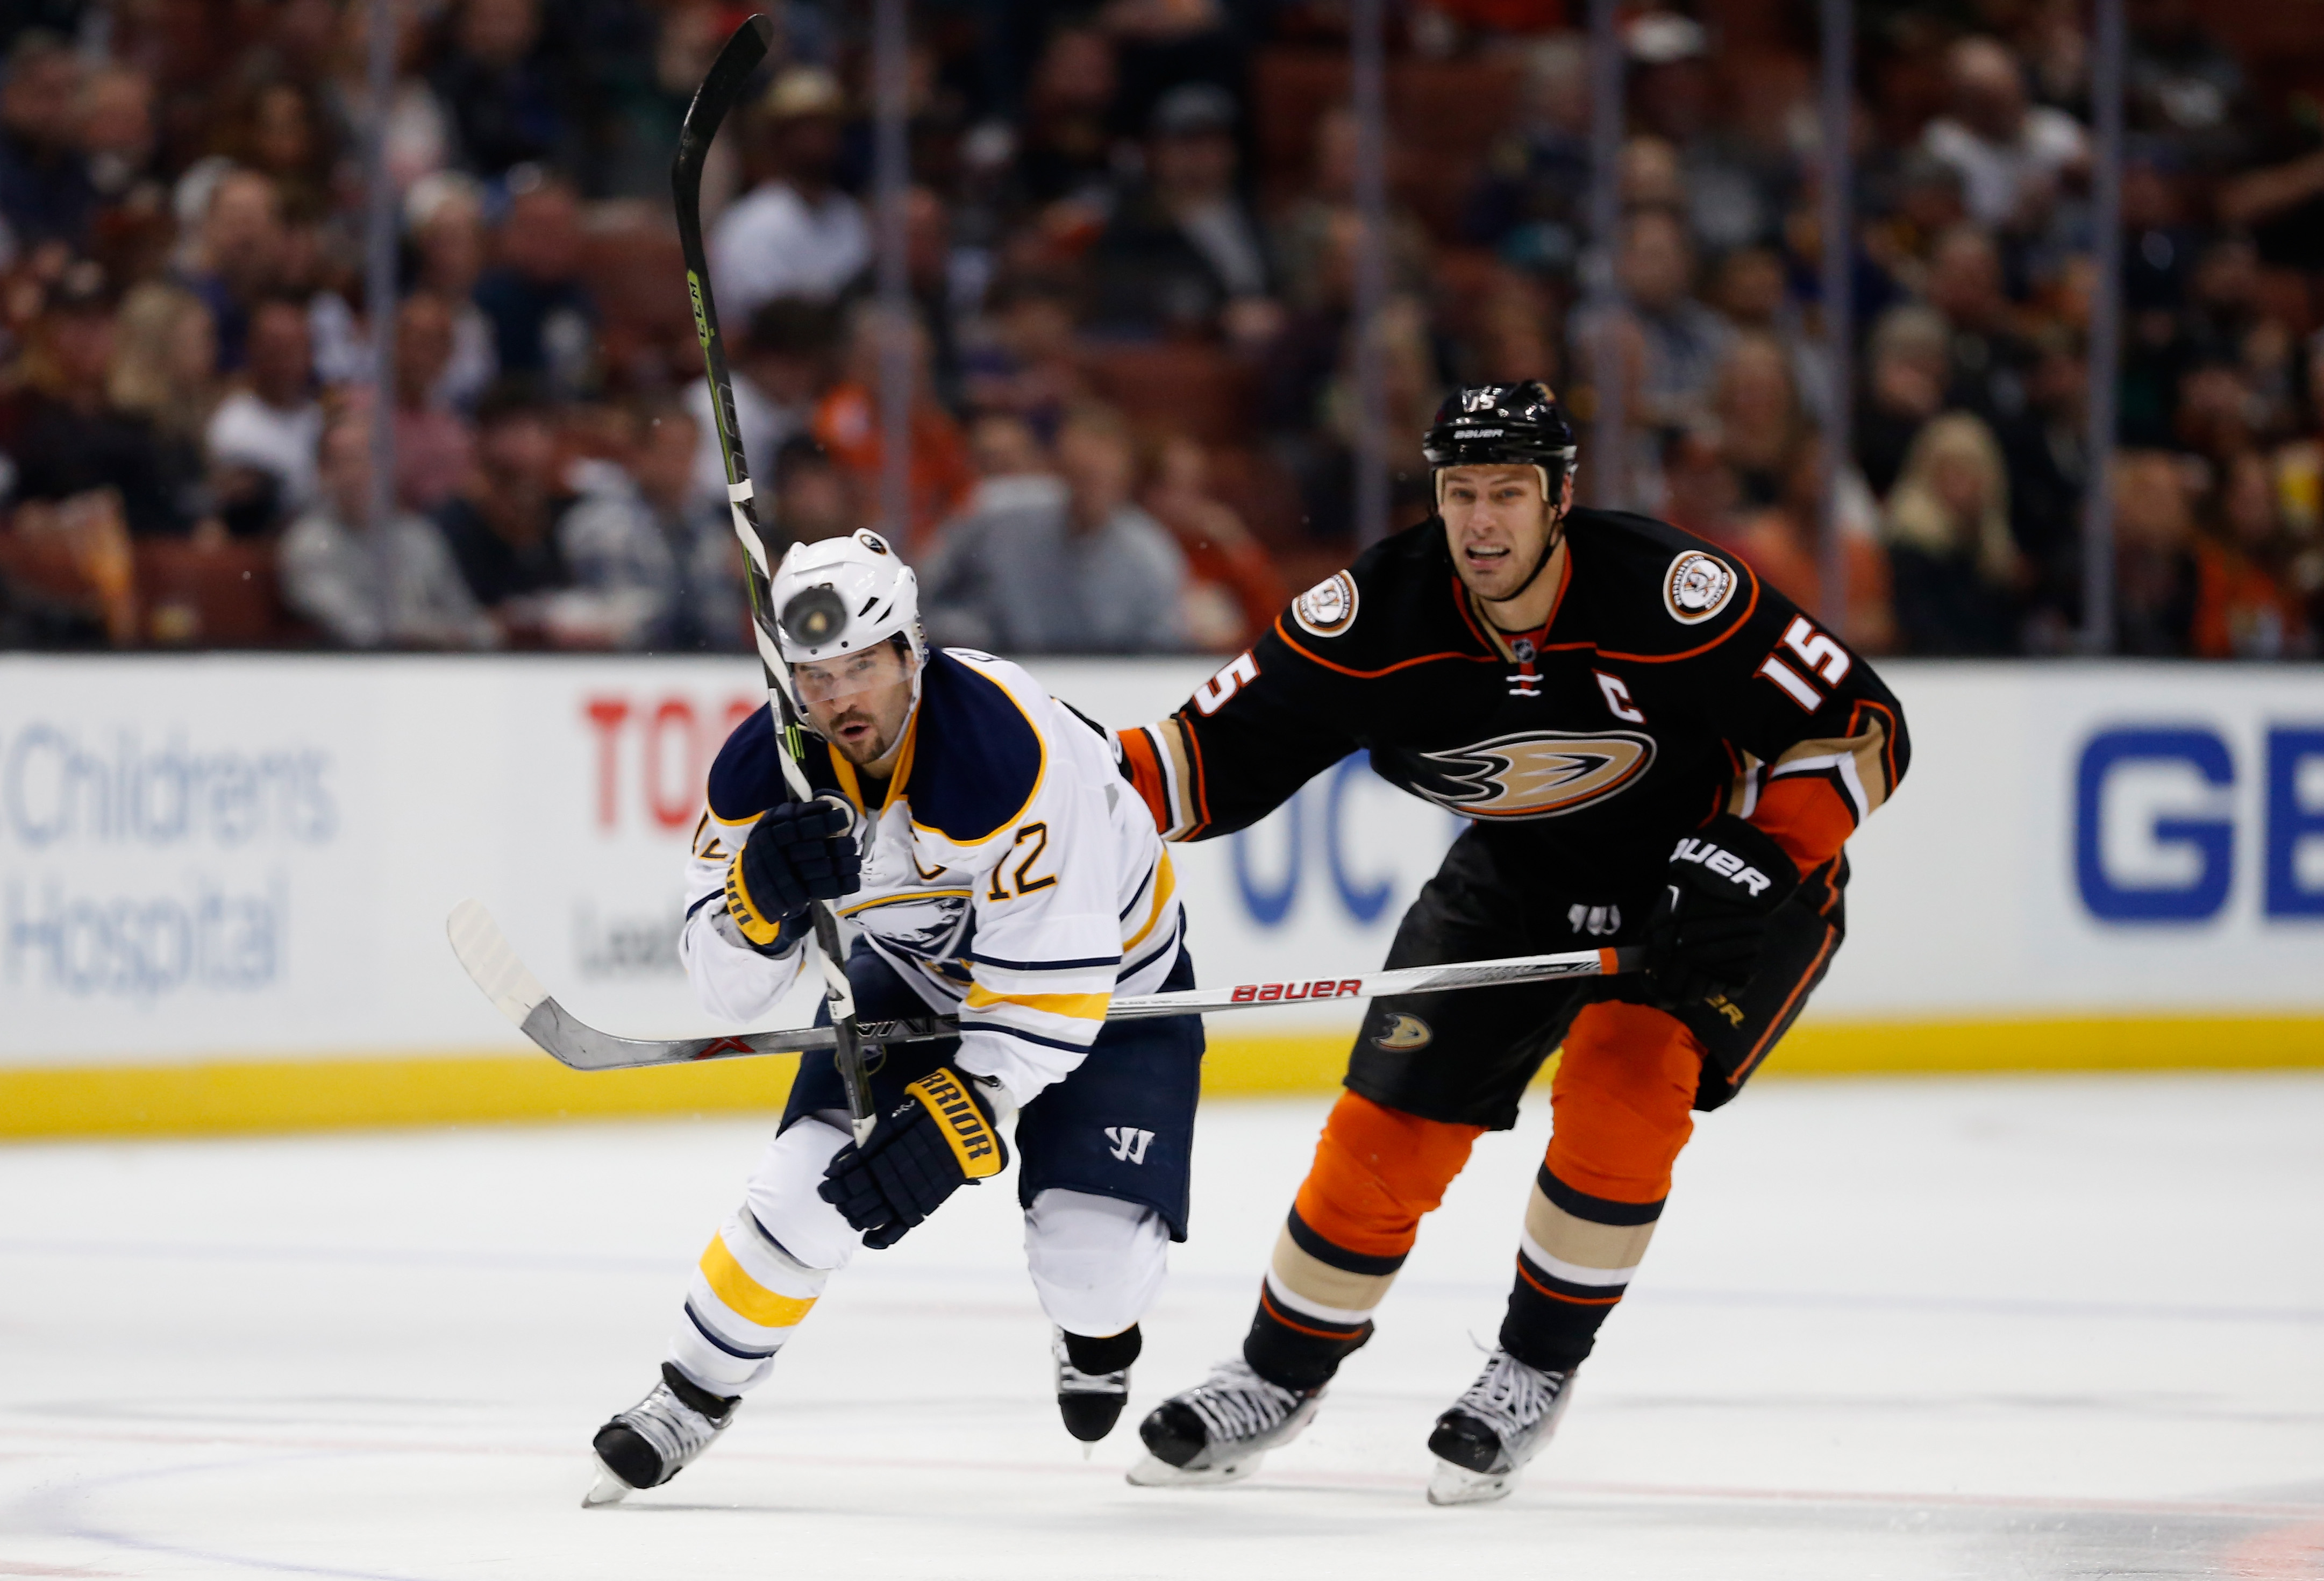 Brian Gionta of the Sabres and Ryan Getzlaf of the Ducks track a loose puck in the first period Wednesday (Getty Images).